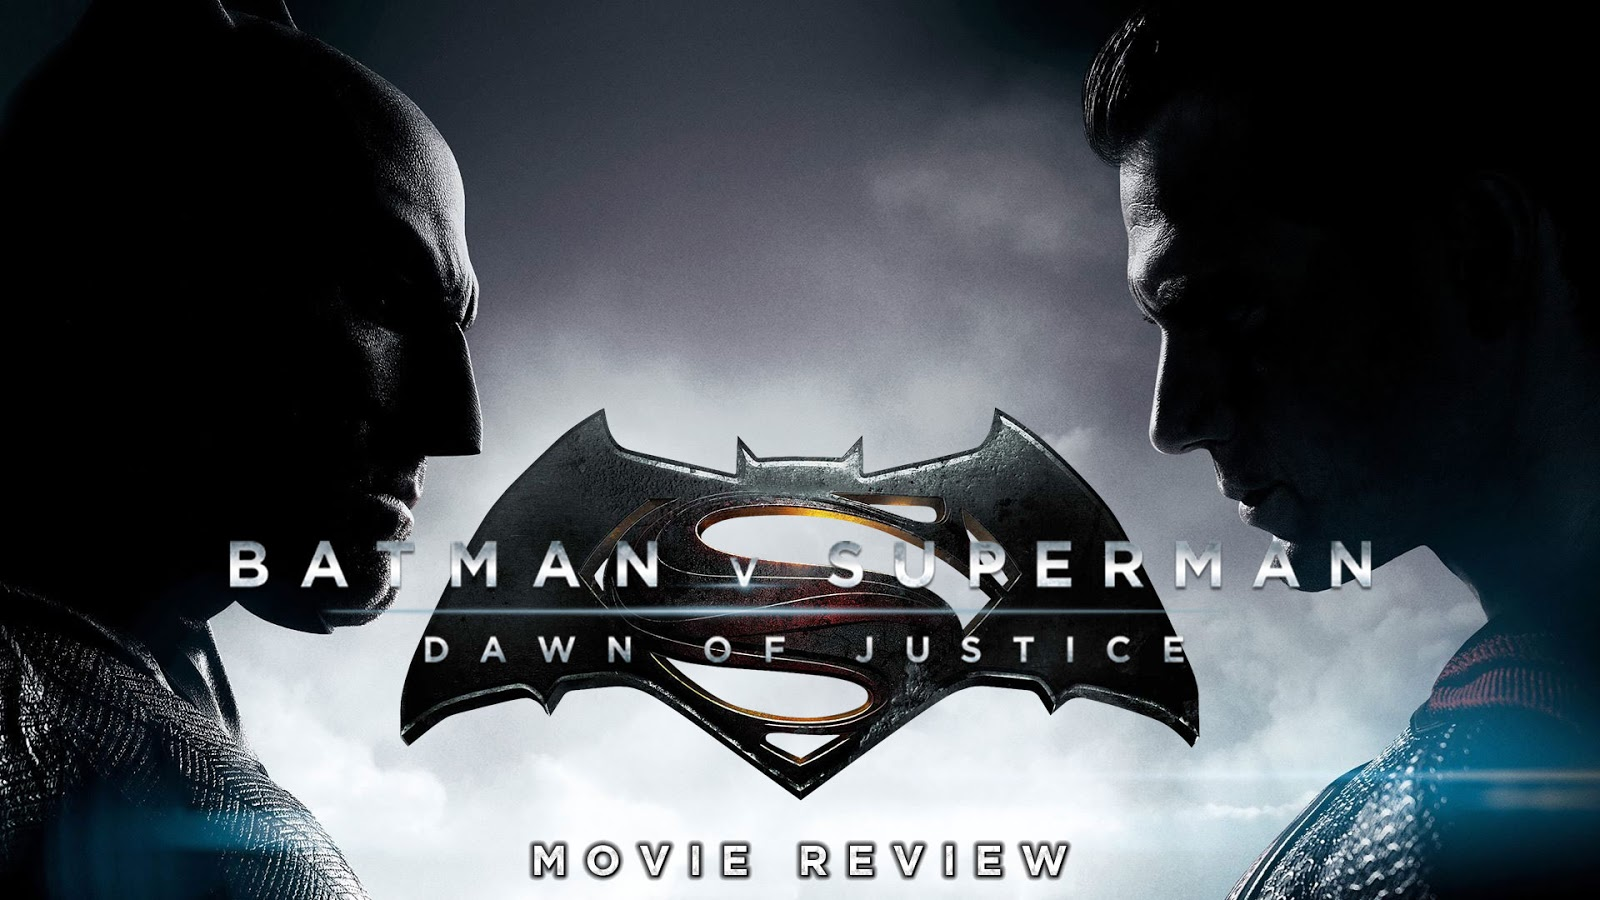 movie review Batman v Superman: Dawn of Justice podcast